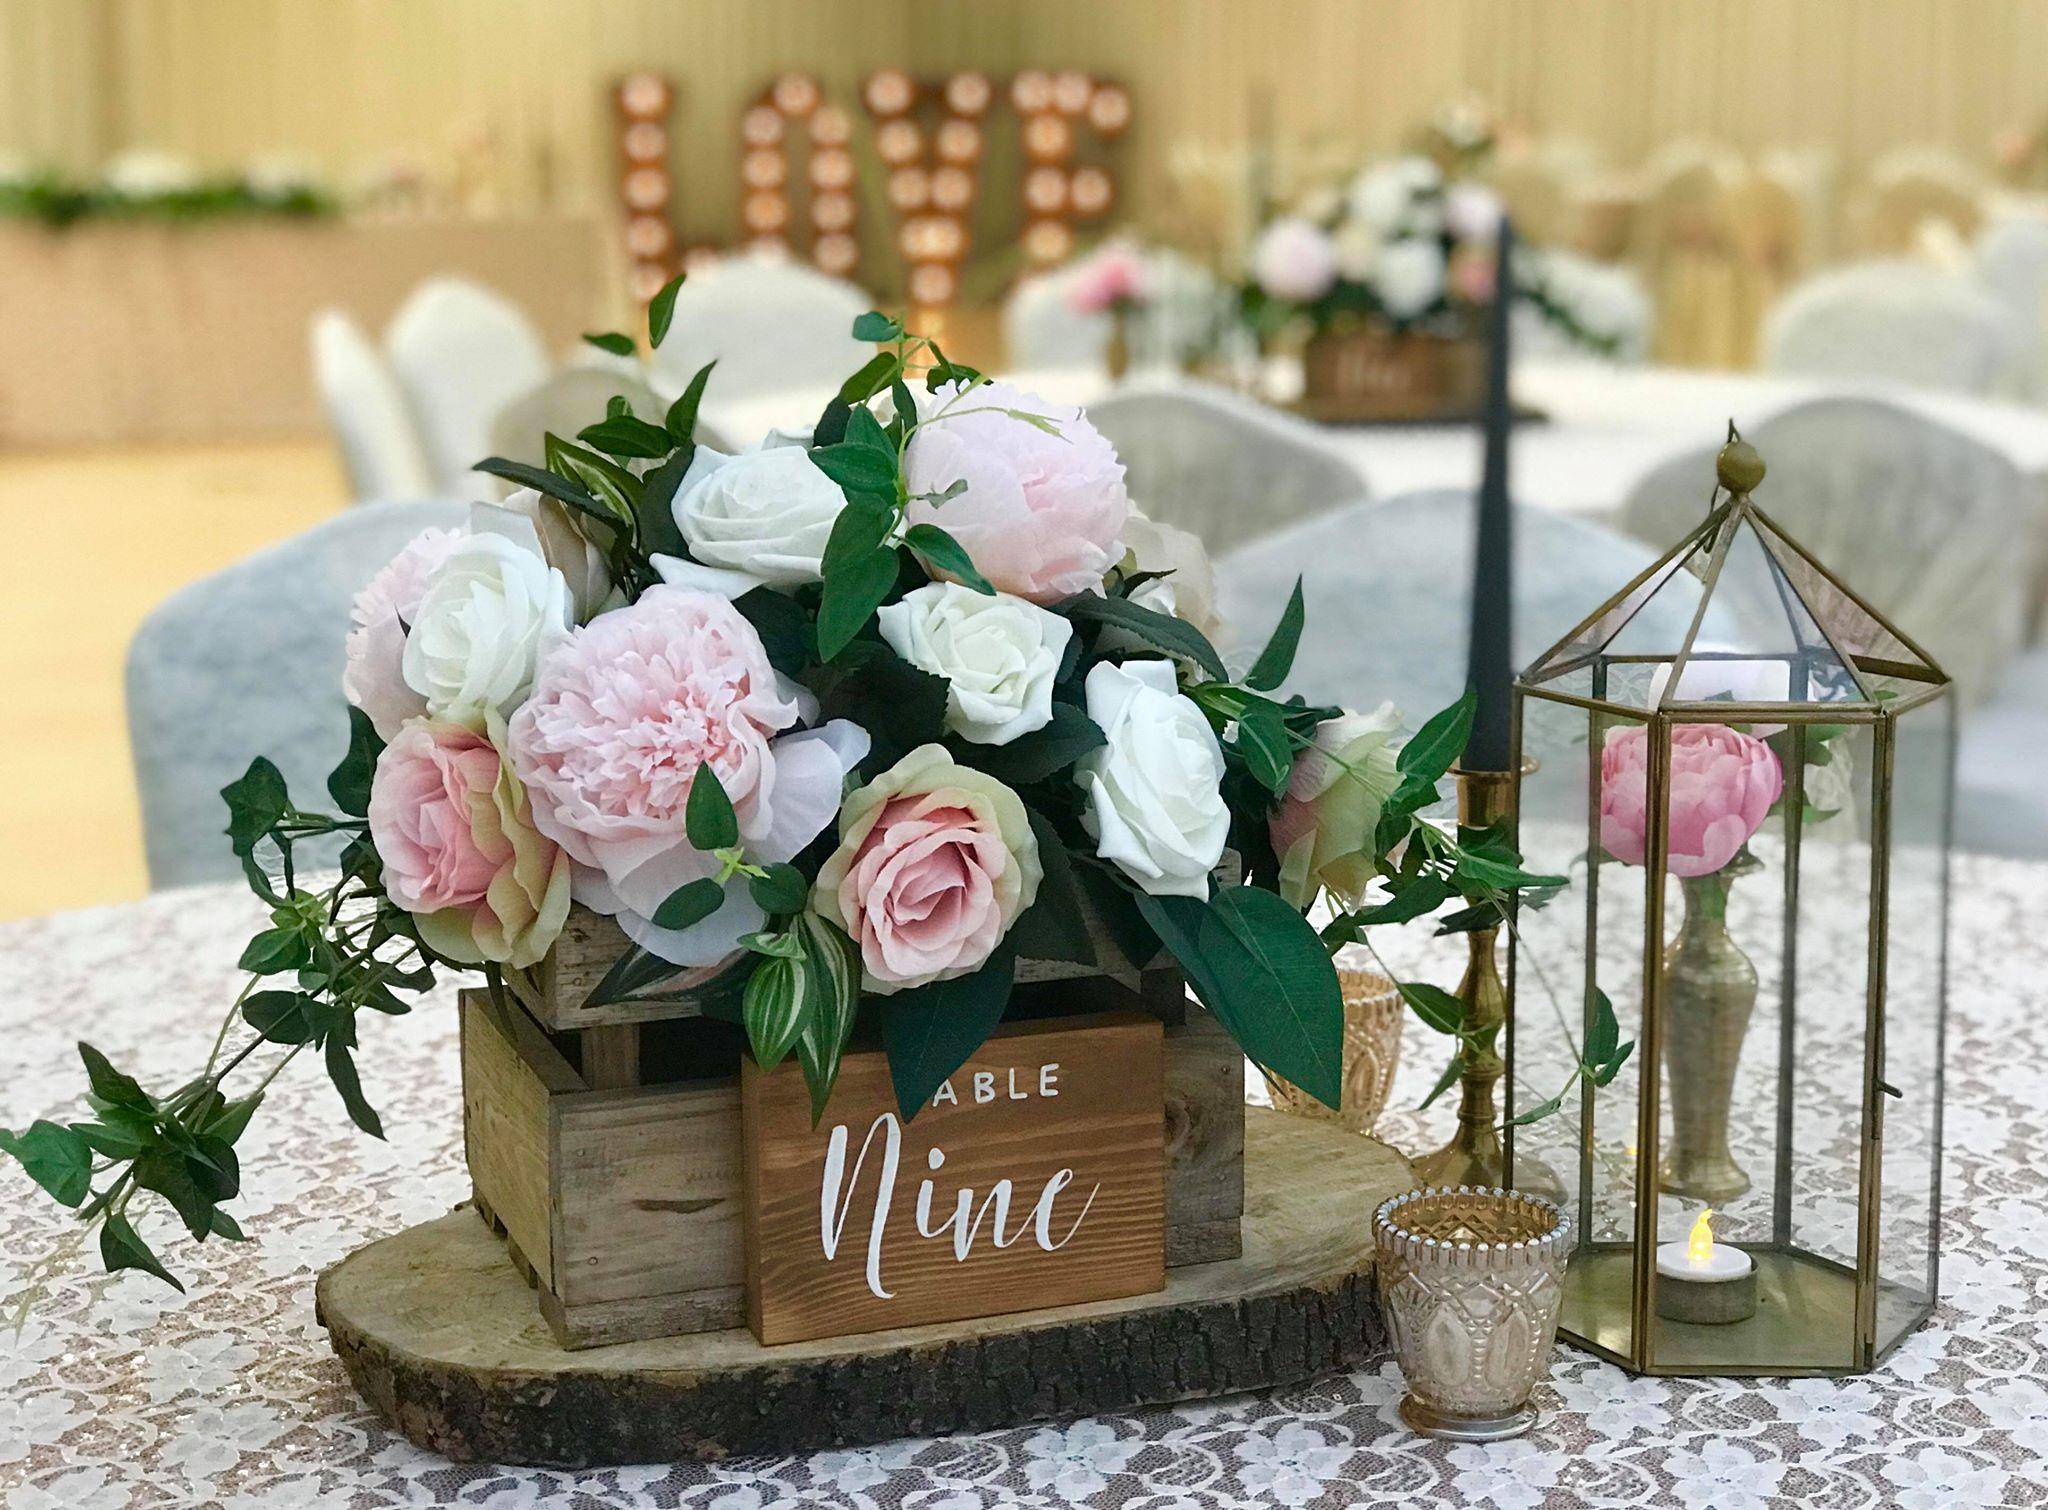 Rustic wedding centrepieces wooden crate on tree slices